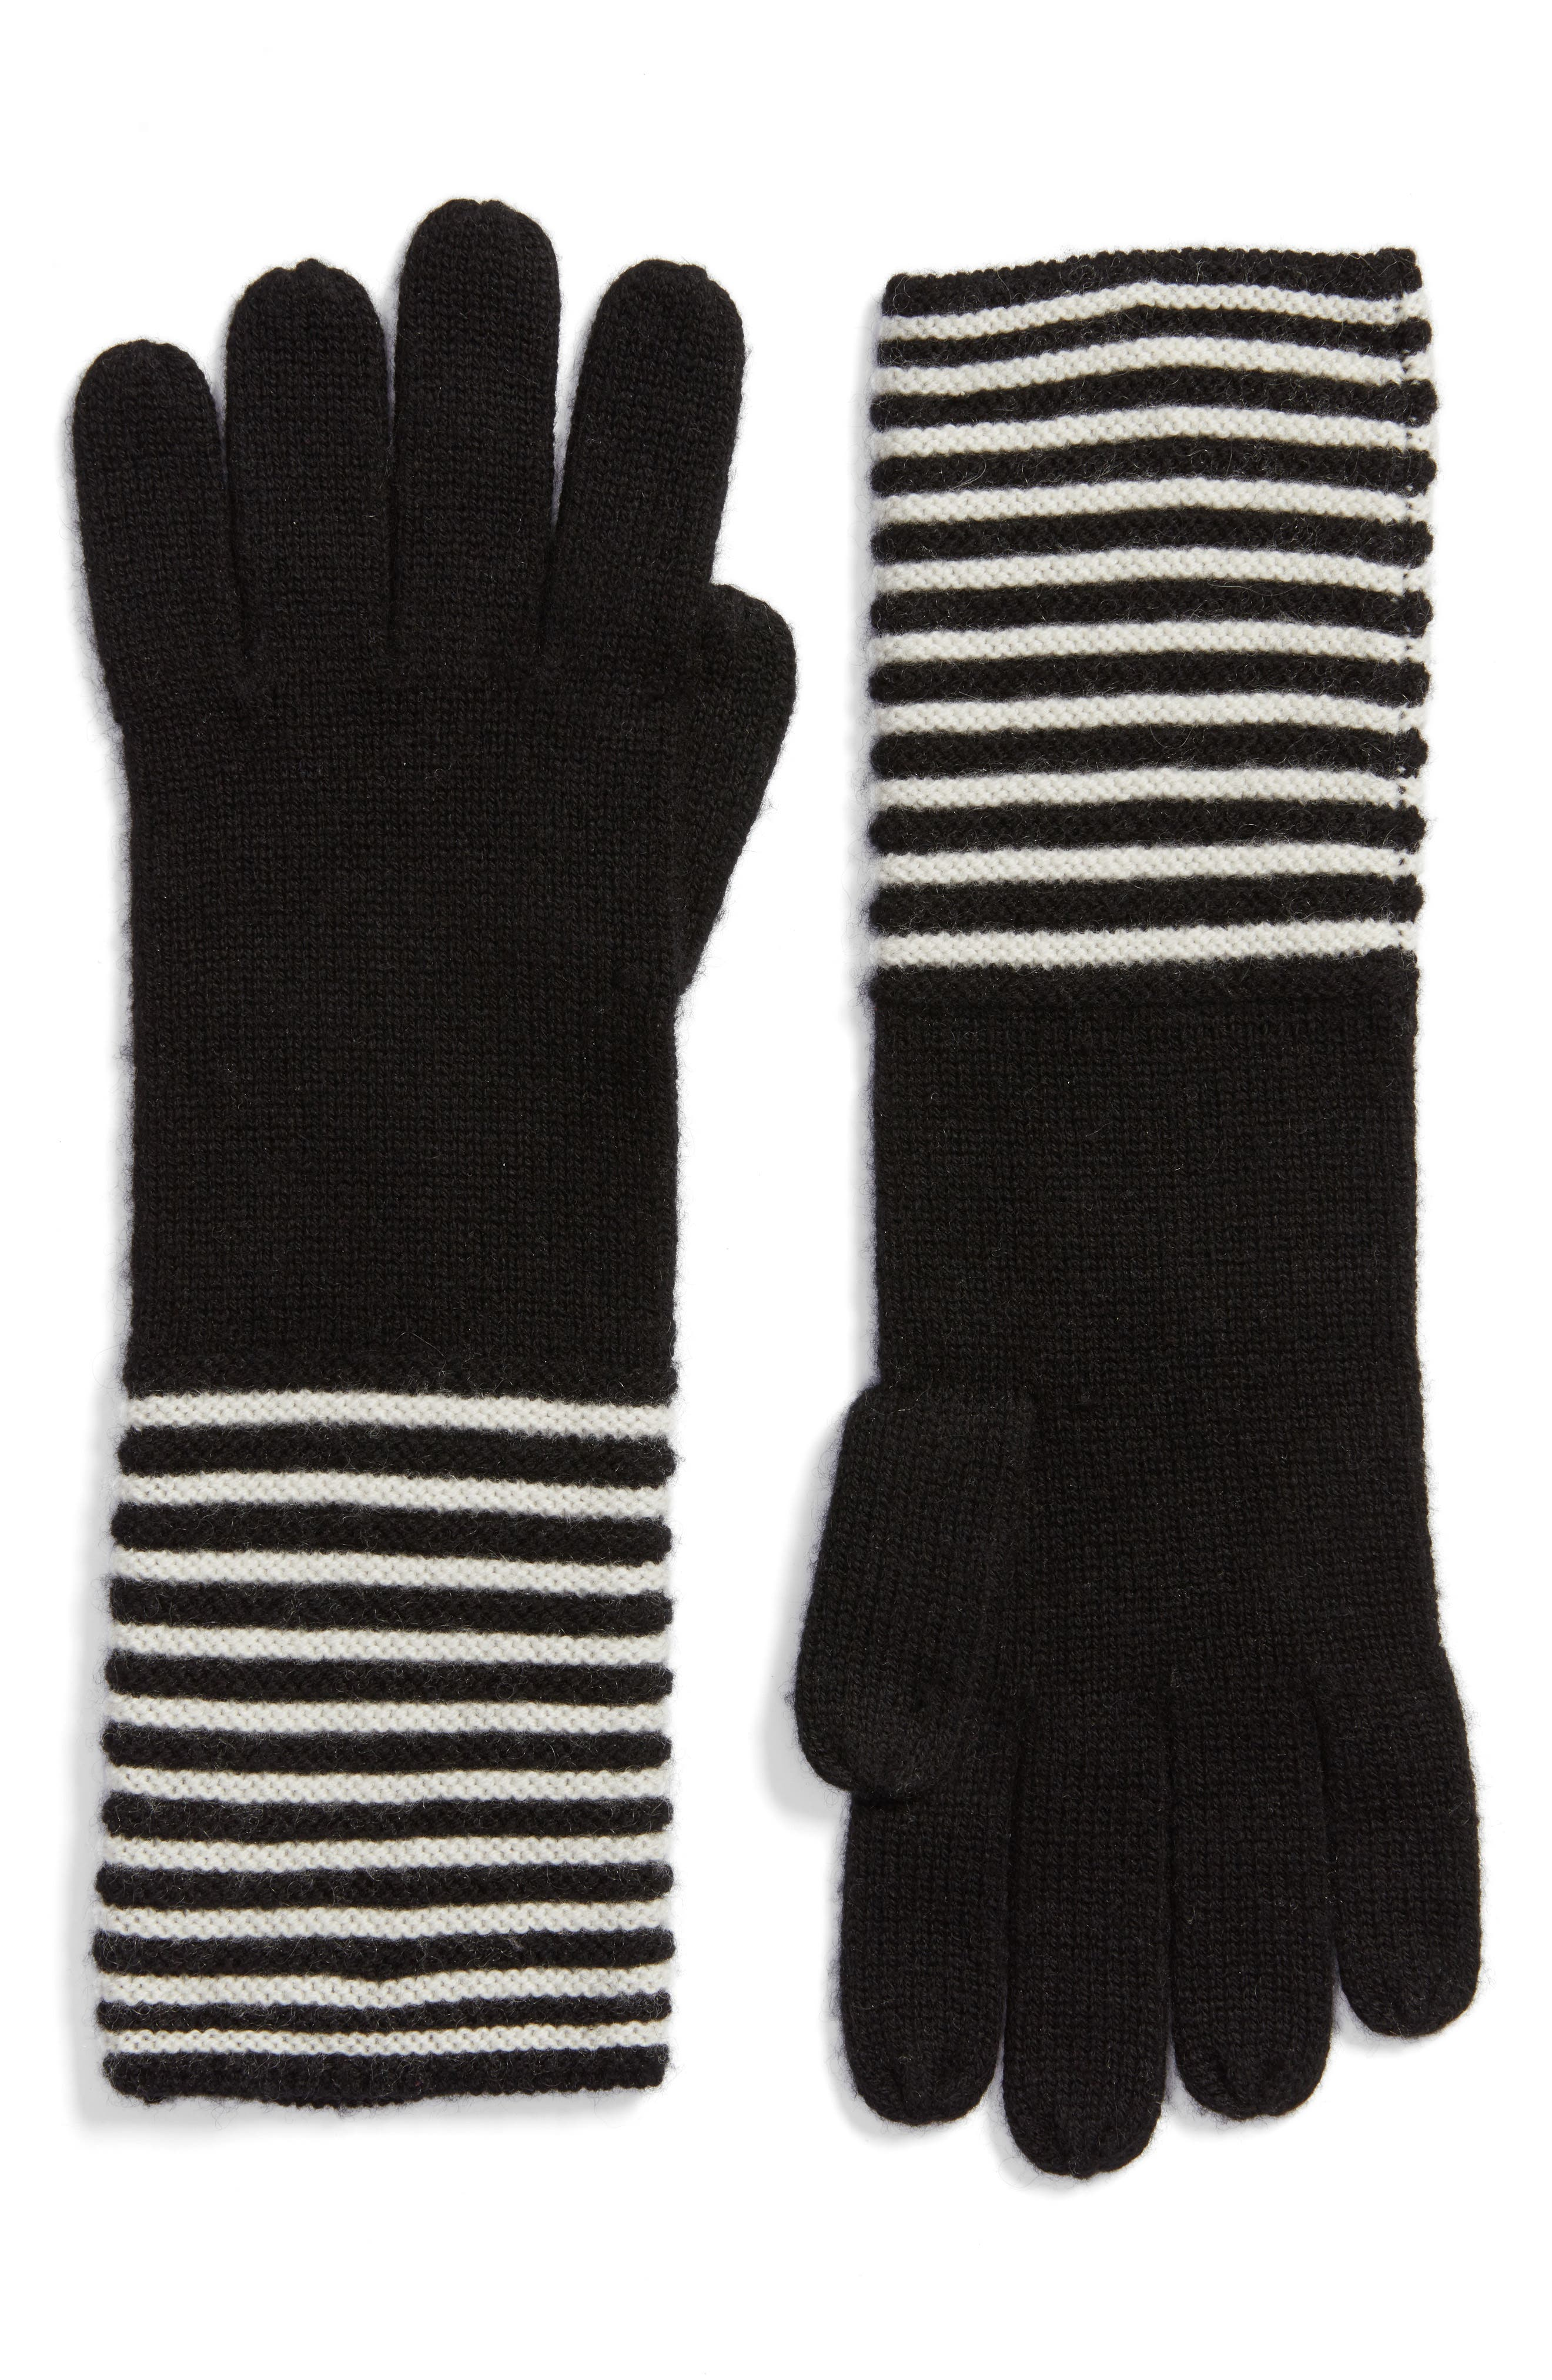 Double Links Wool & Cashmere Gloves,                             Main thumbnail 1, color,                             001